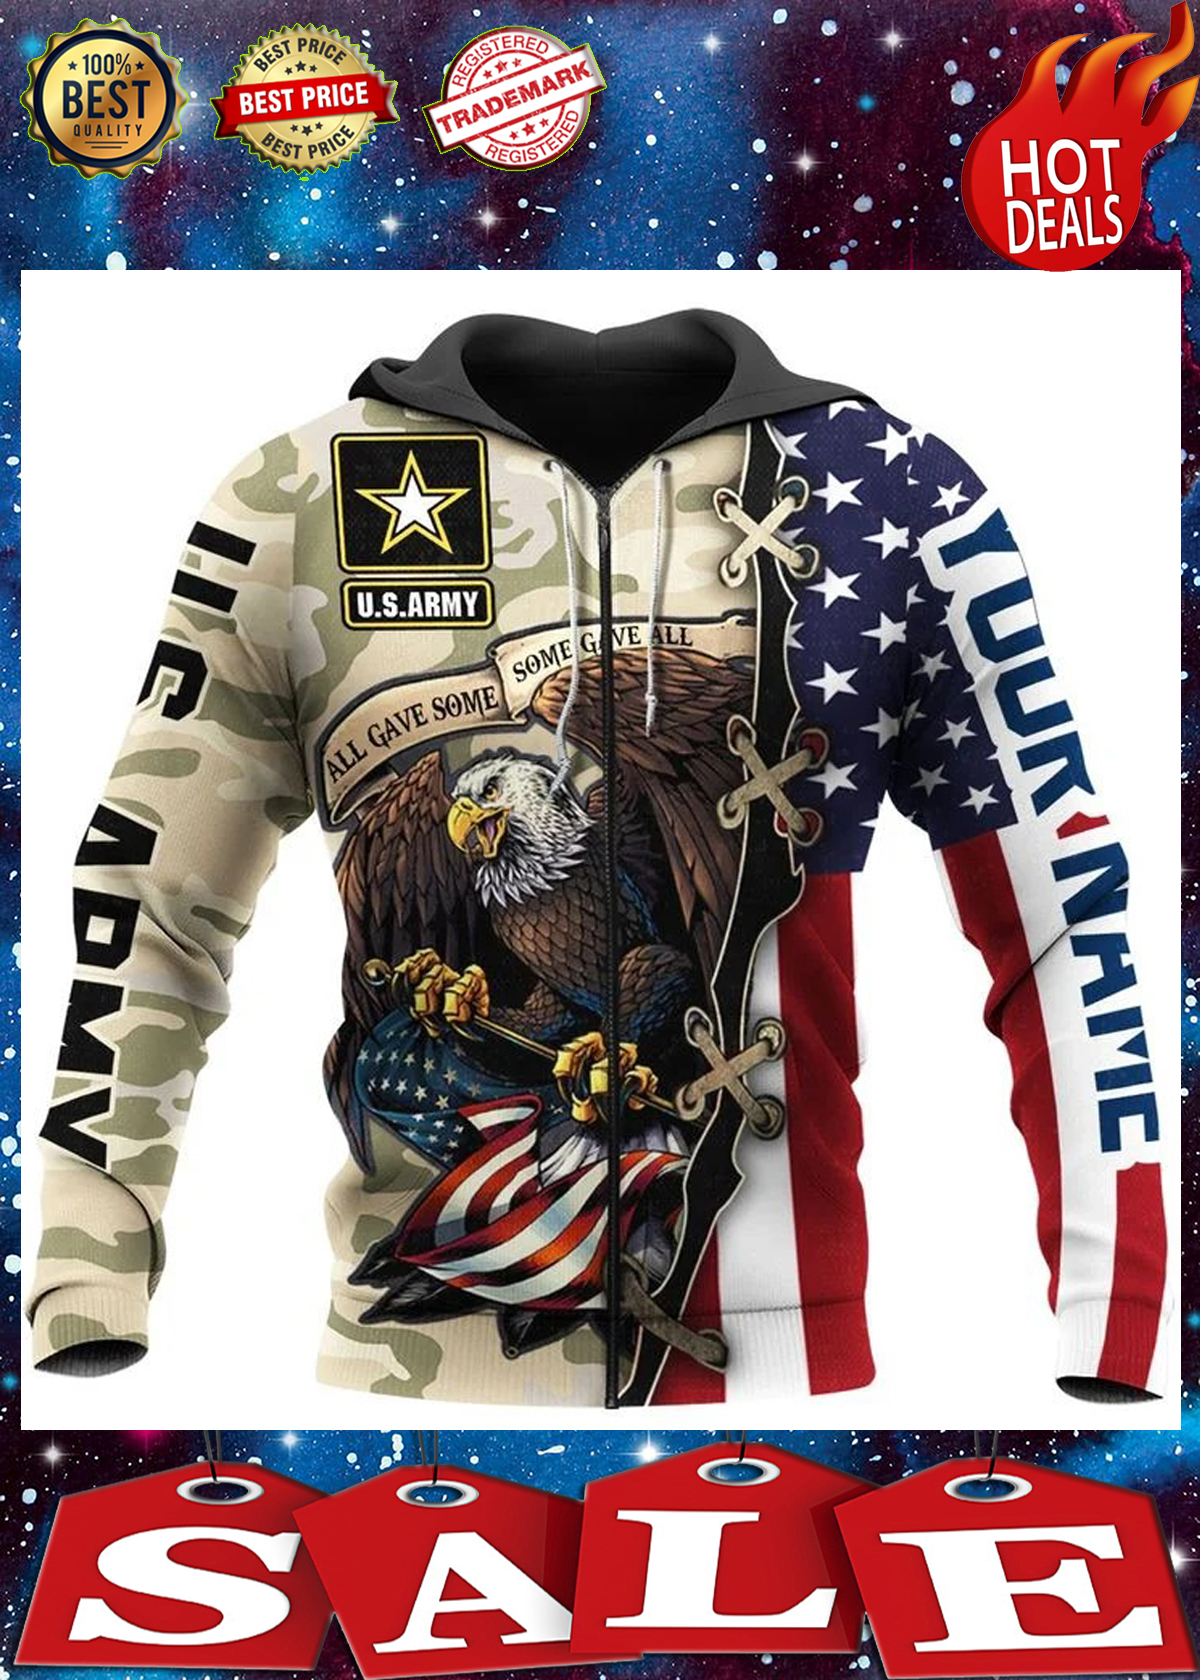 Us army all gave some some gave all personalize custom name 3d hoodie 2